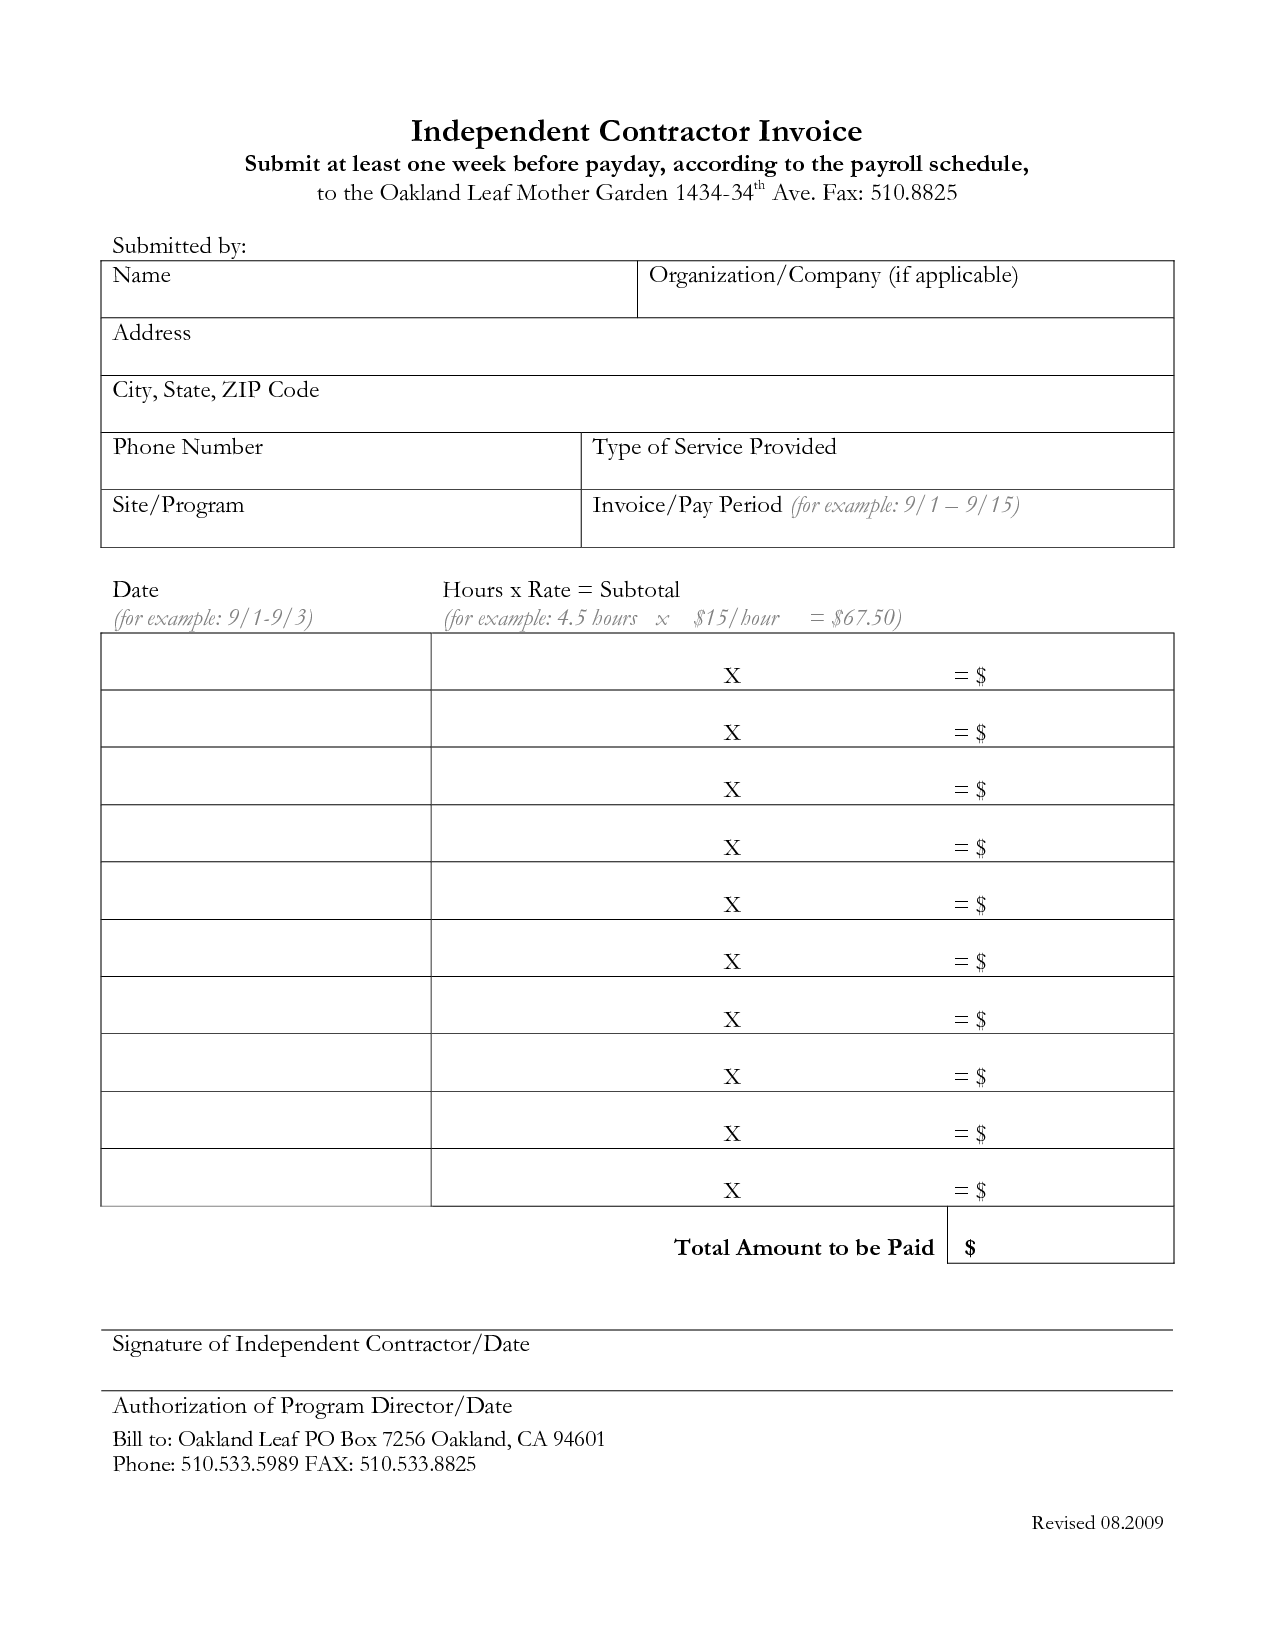 Independent Contractor Invoice Template Free Invoice Example - Free invoice template : independent contractor invoice template